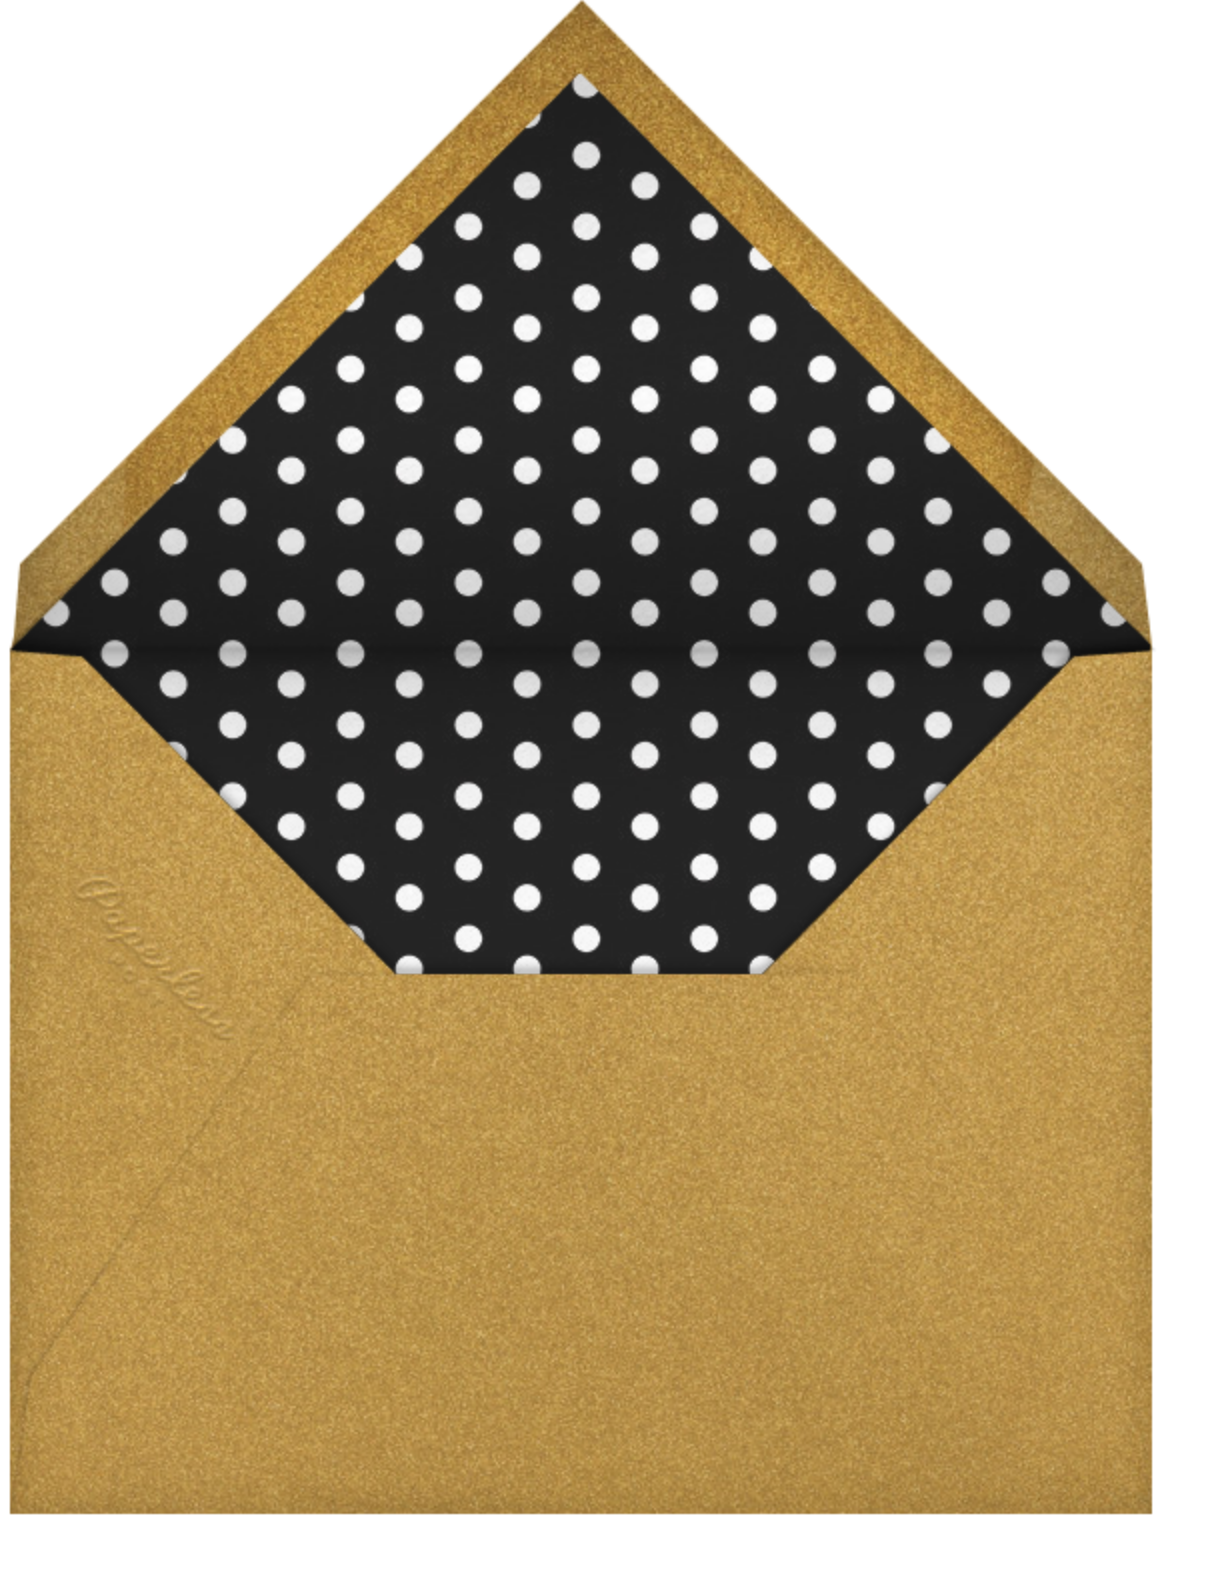 Shake N Roll - Gold - Paperless Post - Cocktail party - envelope back